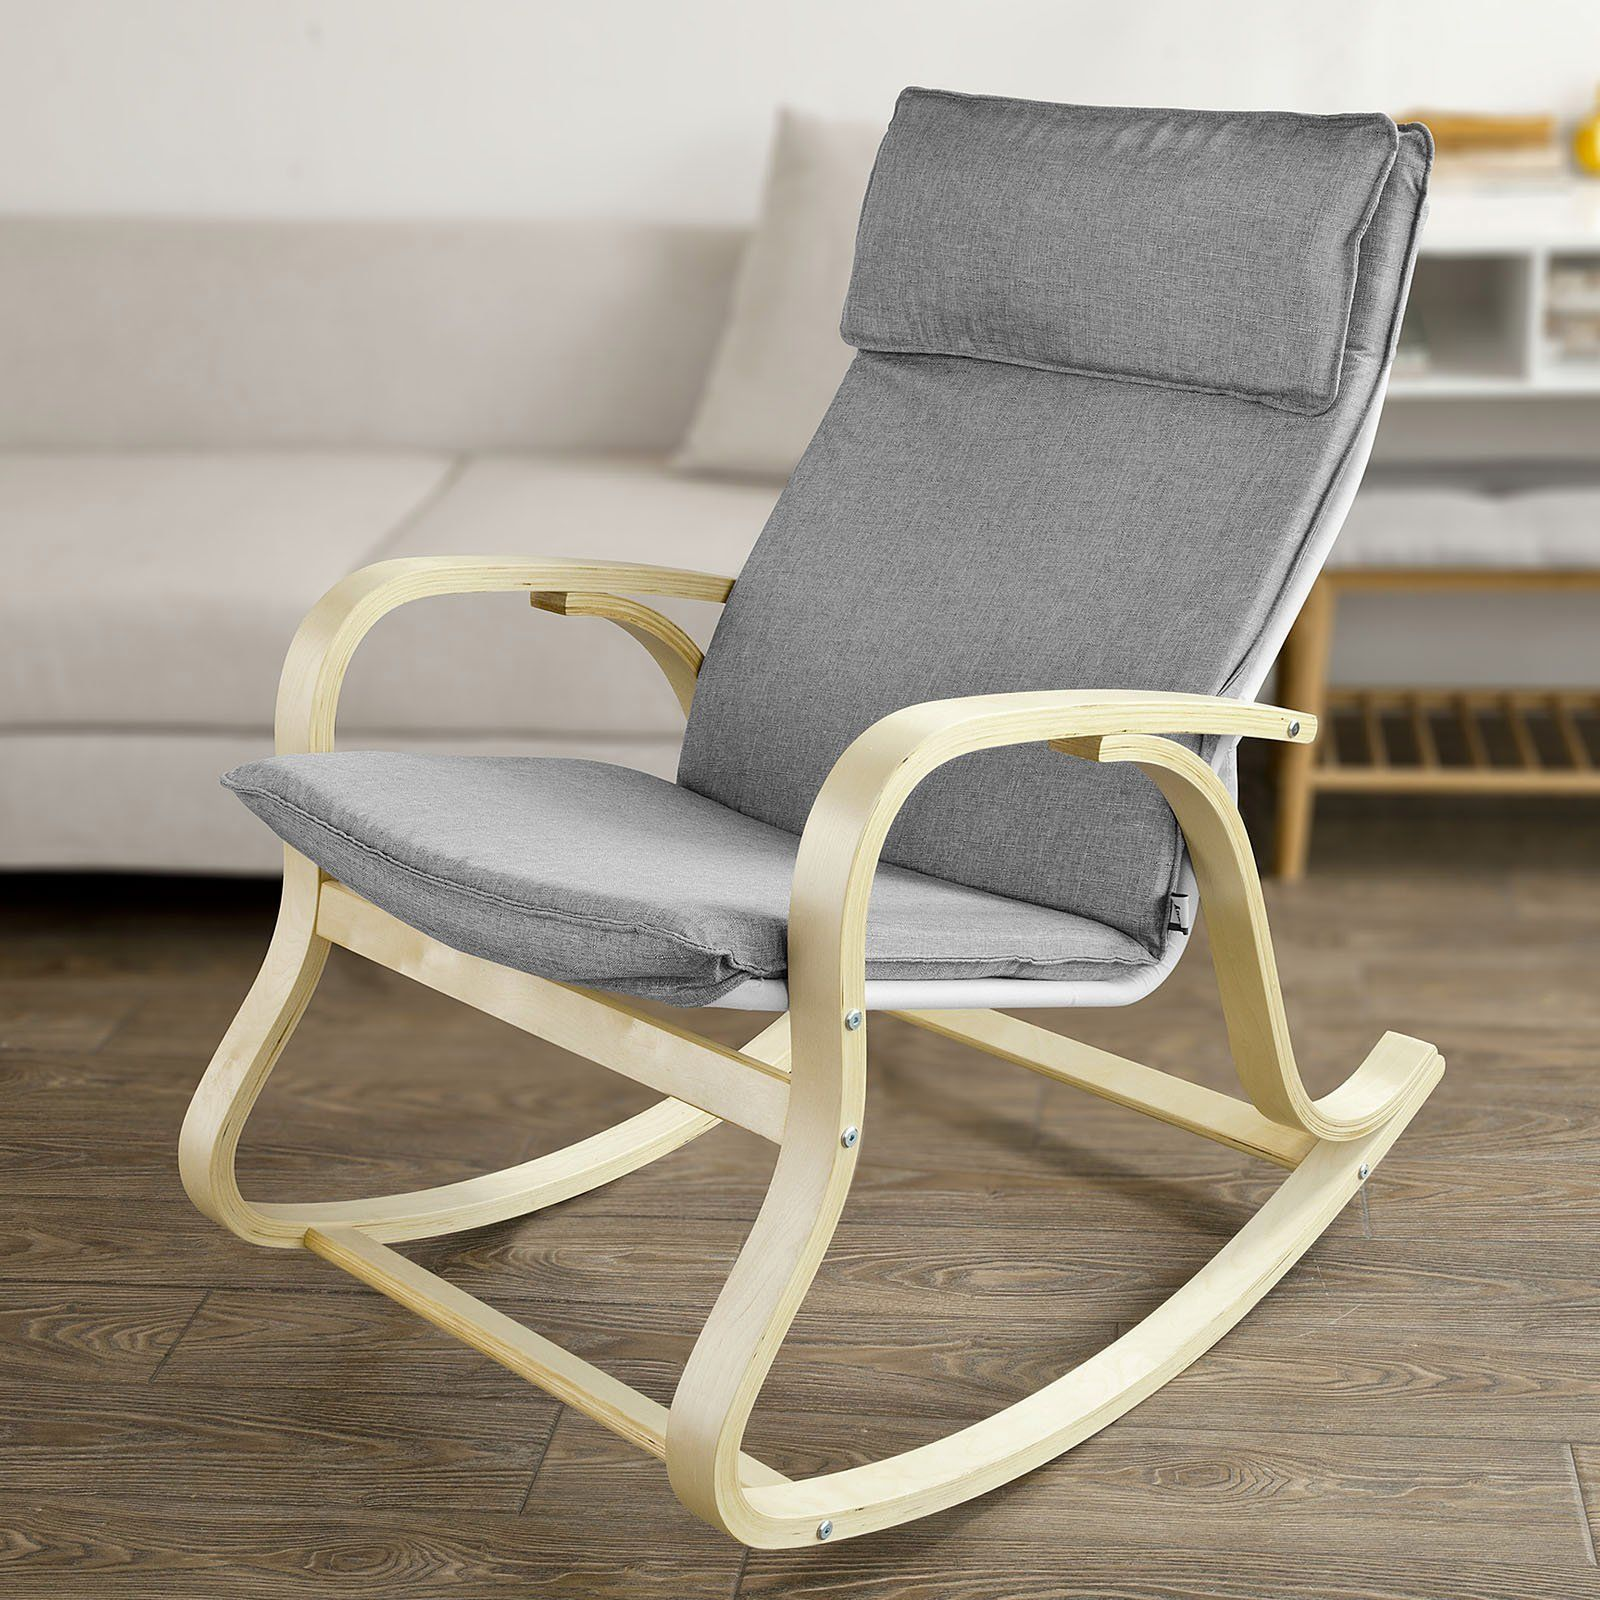 Haotian FST15DG Comfortable Relax Rocking Chair Lounge